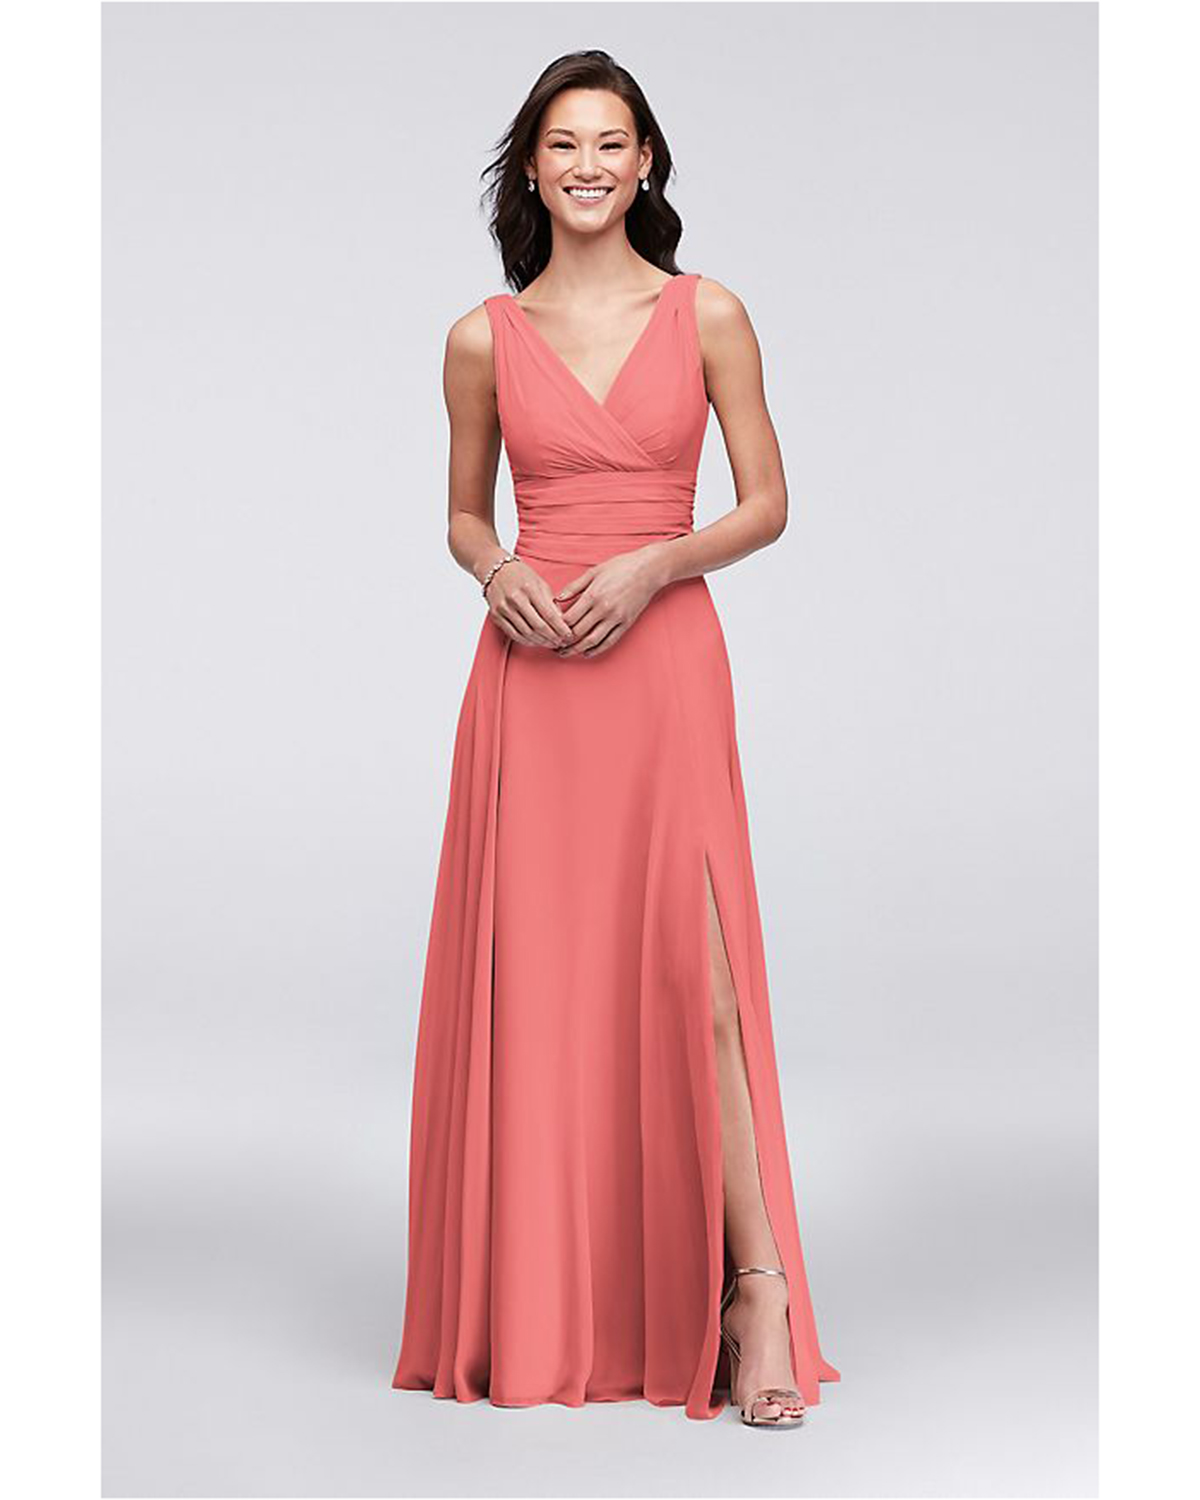 Coral Wedding Gowns: 15 Coral Bridesmaids' Dresses Your Wedding Party Will Love